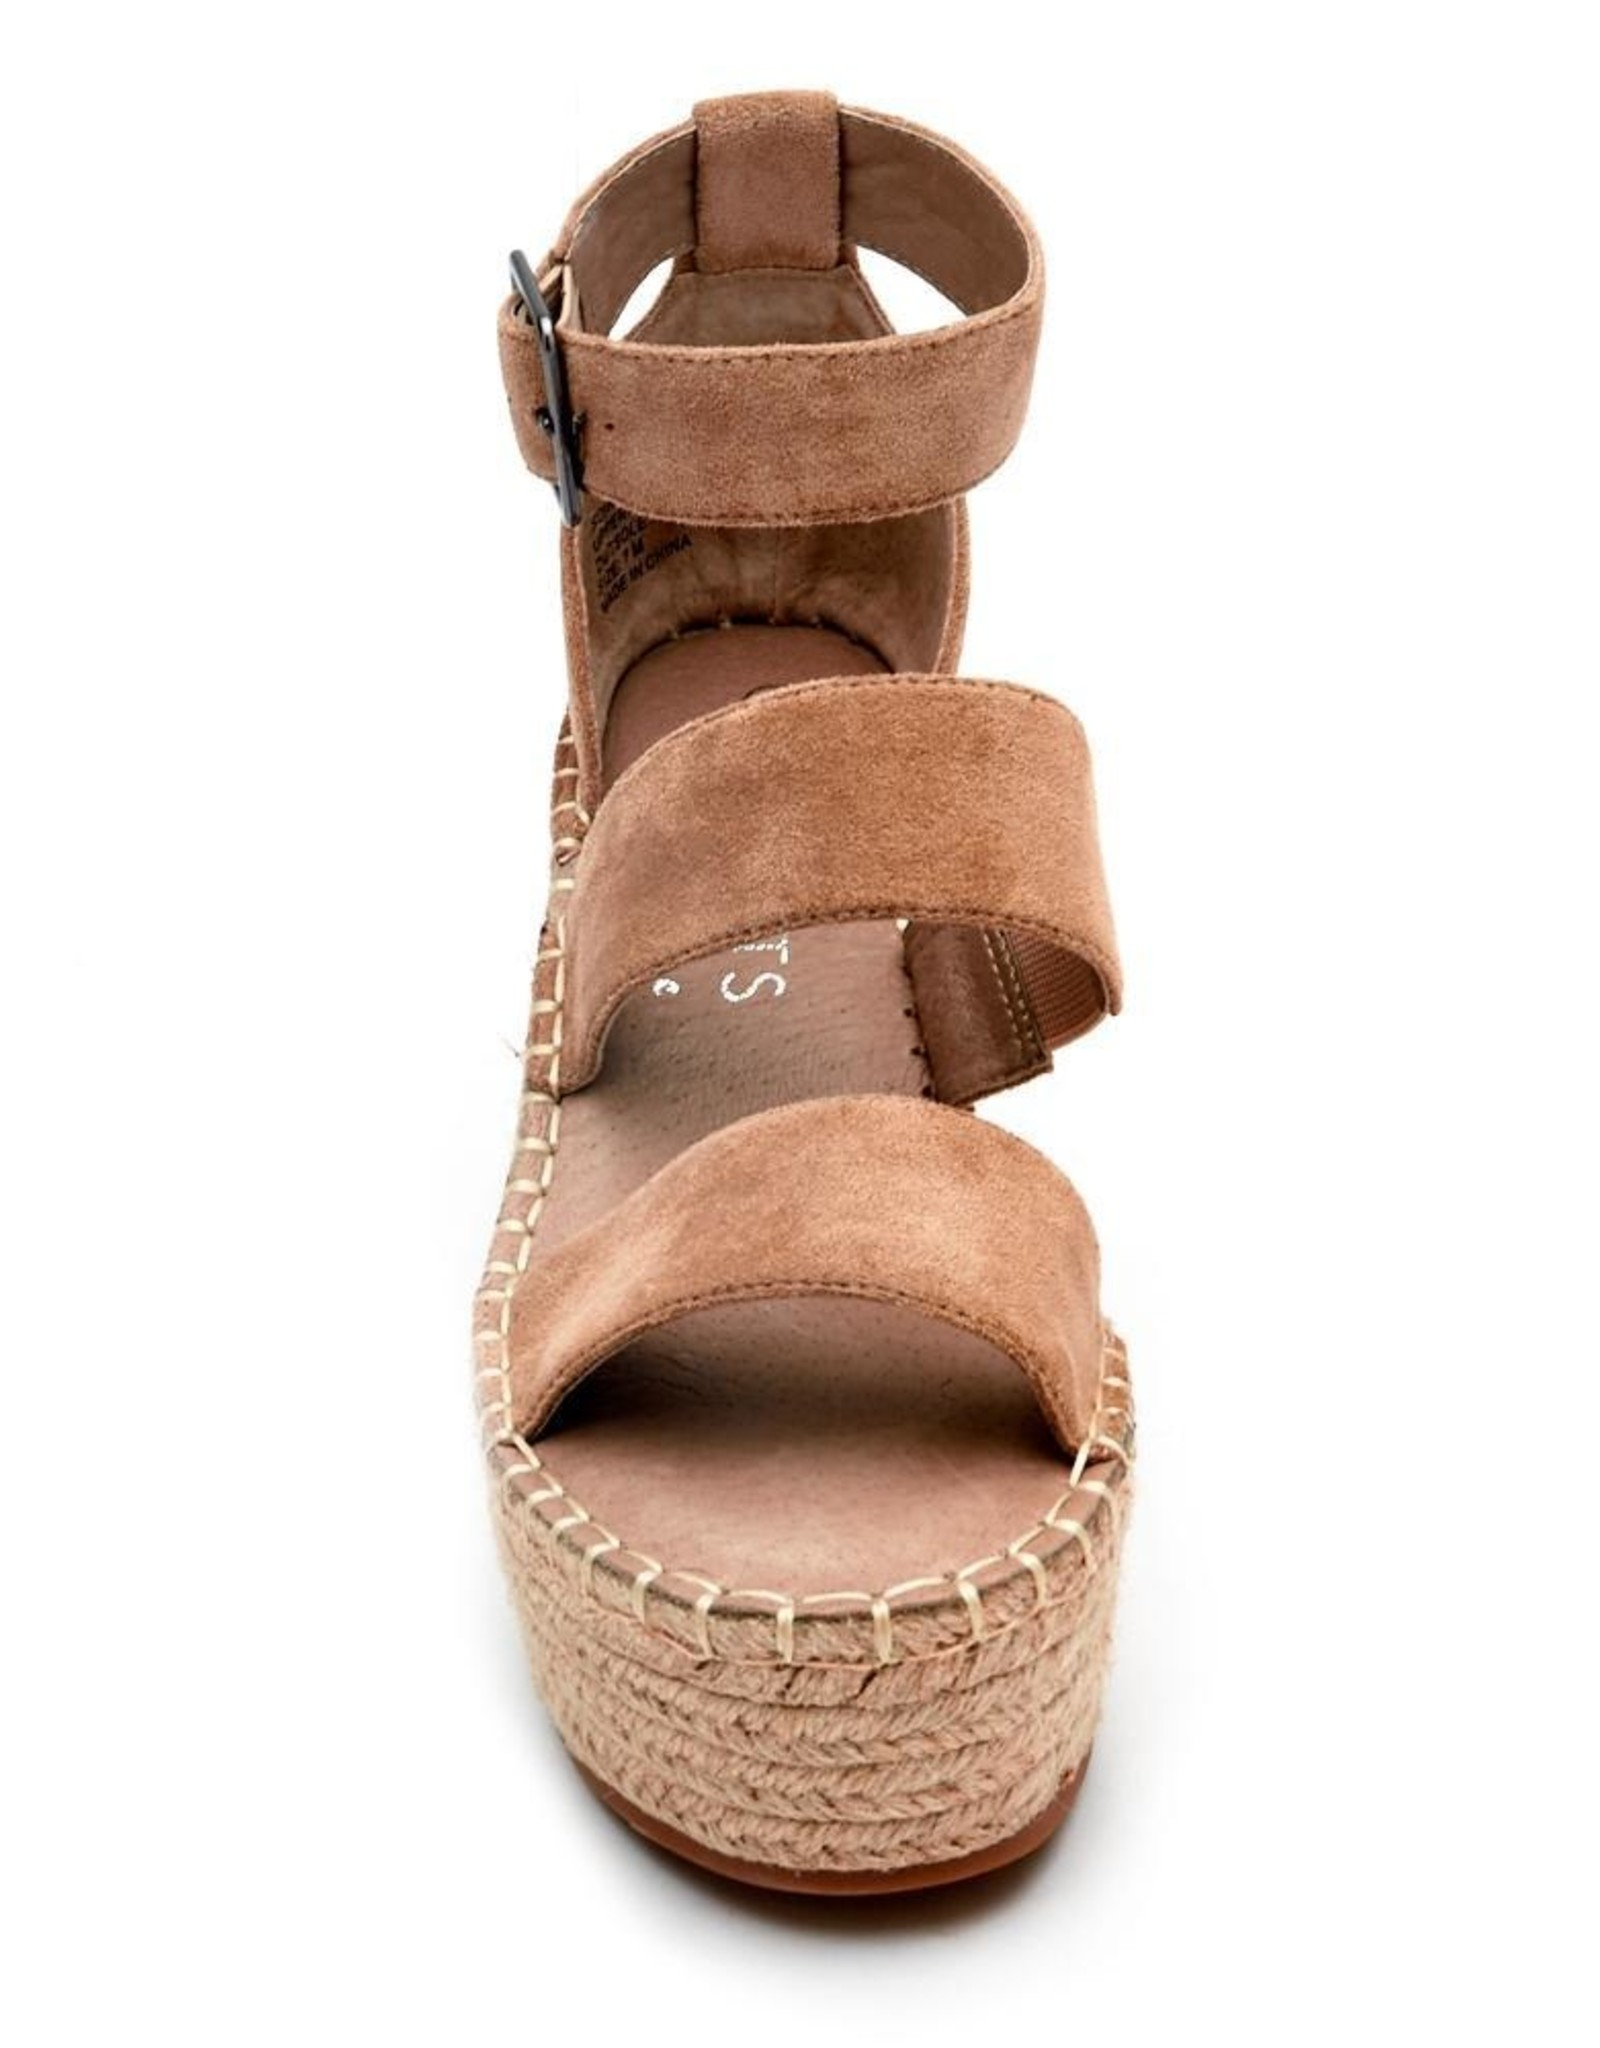 Soire Natural Wedge